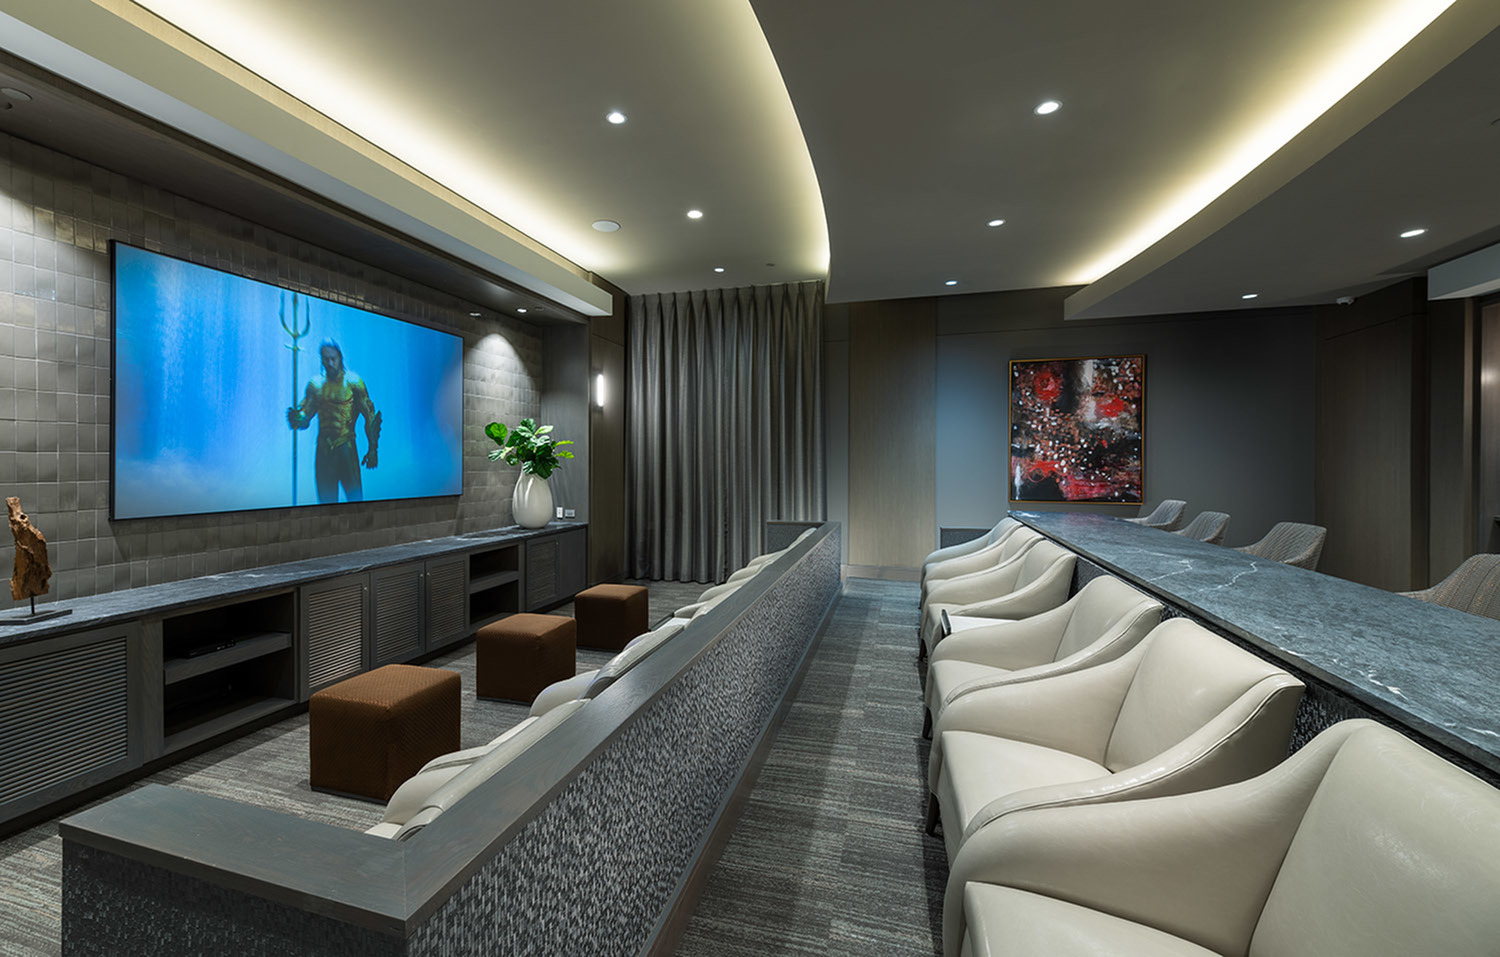 Private Media Room Featuring Surround-Sound and Theater-Style Seating at Hanover Town Center